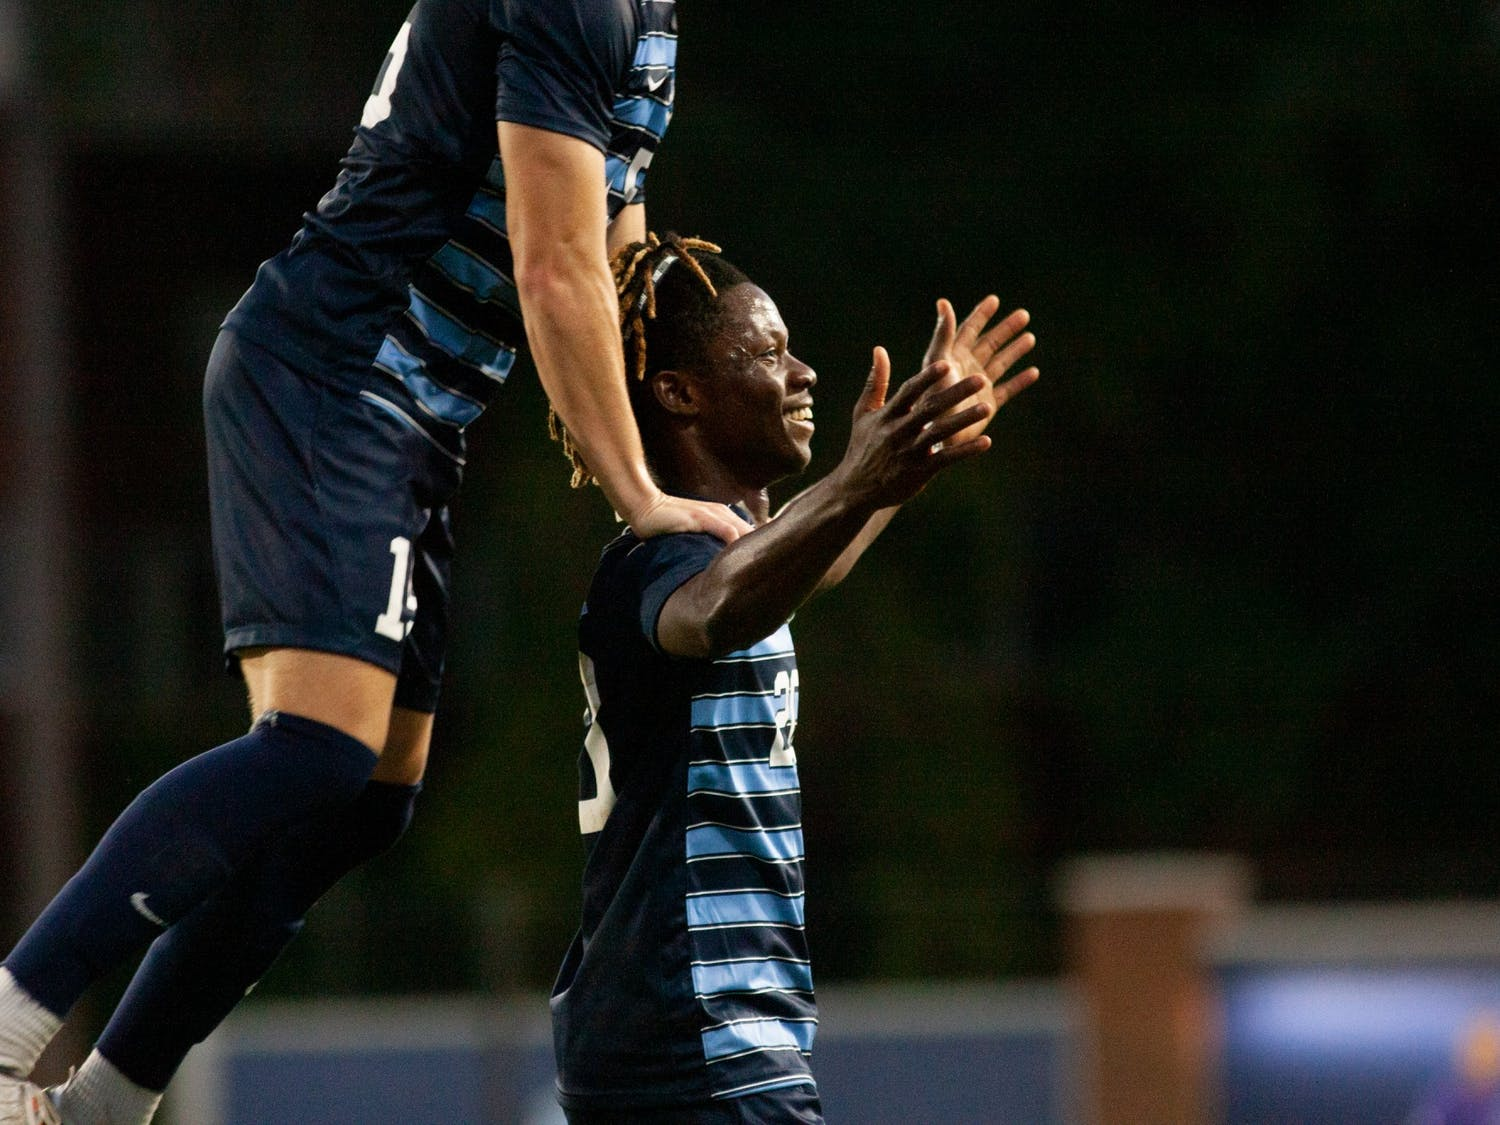 UNC sophomore midfielder/forward Ernest Bawa (20) celebrates after scoring a goal against Georgia Southern at Dorrance Field on Sept. 3. The Tar Heels won 3-0 against the Georgia Southern Eagles.